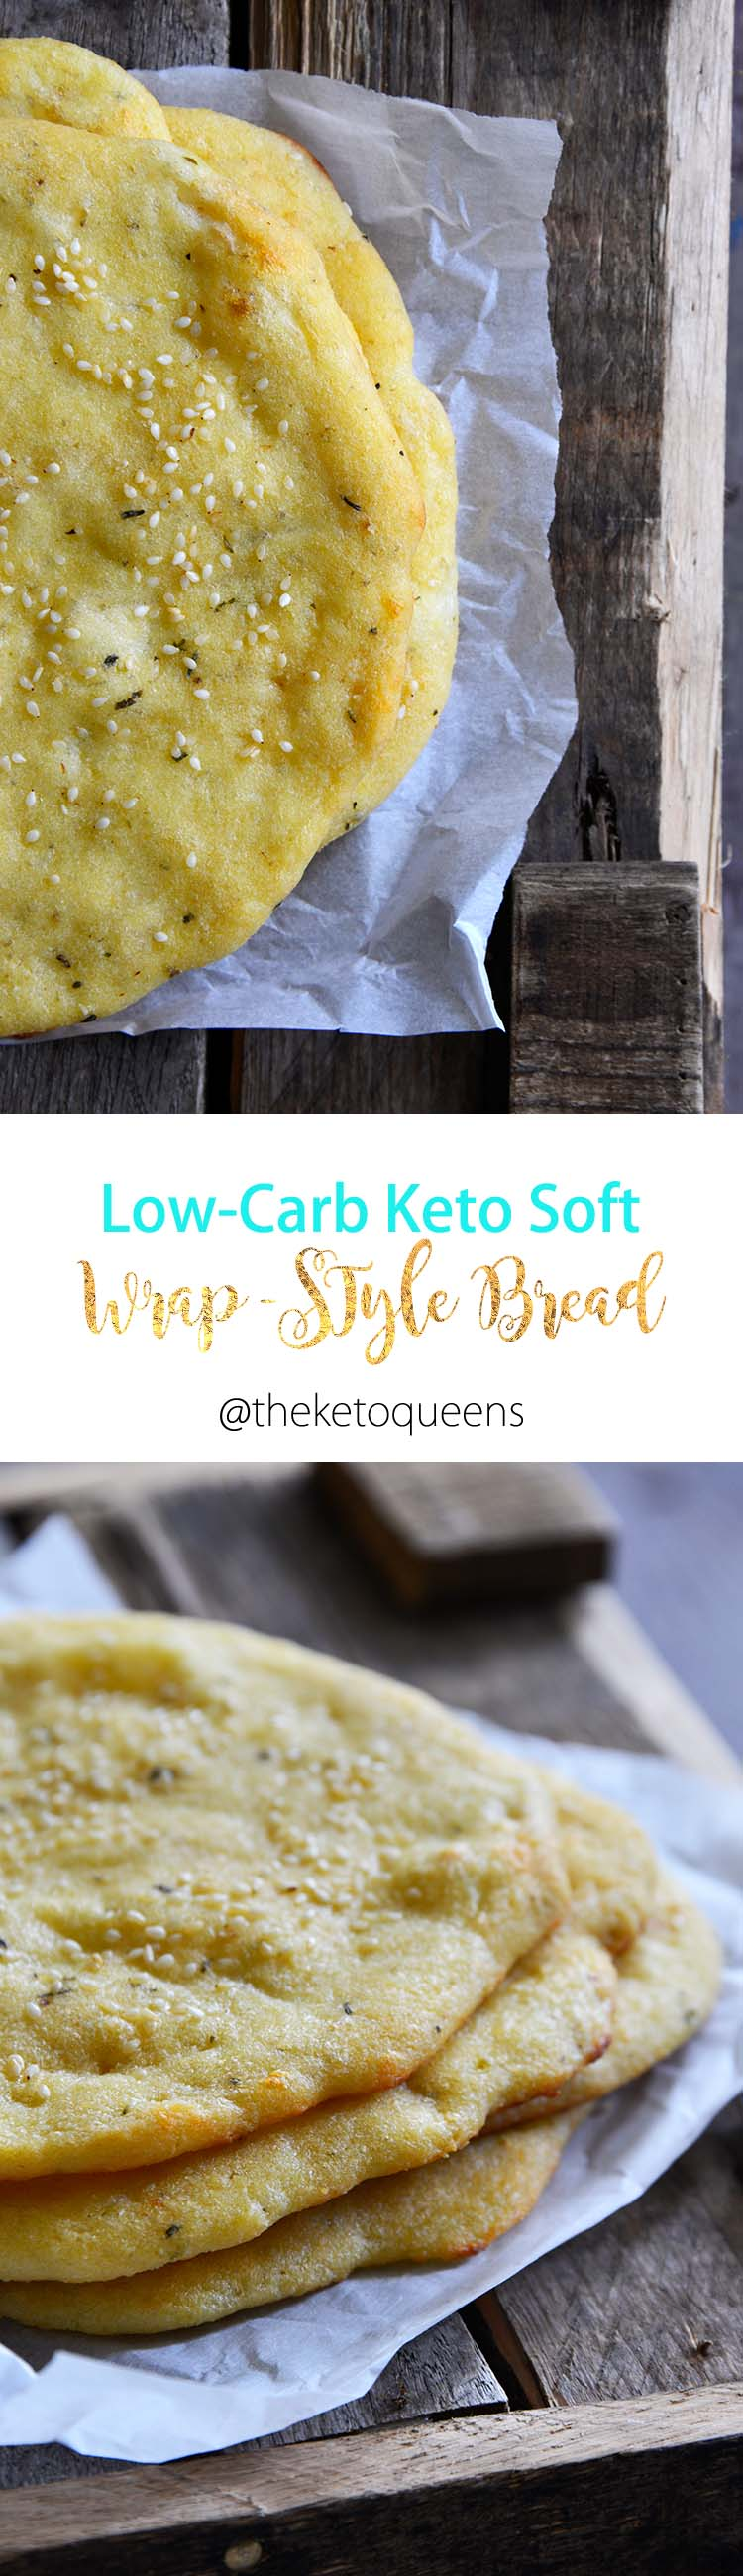 Yes, you can eat WRAPS on keto! This Keto Wrap-Style Soft Tortilla Flatbread is perfect for making into sandwiches or quick pizzas for an easy, delicious meal! #keto #lowcarb #lchf